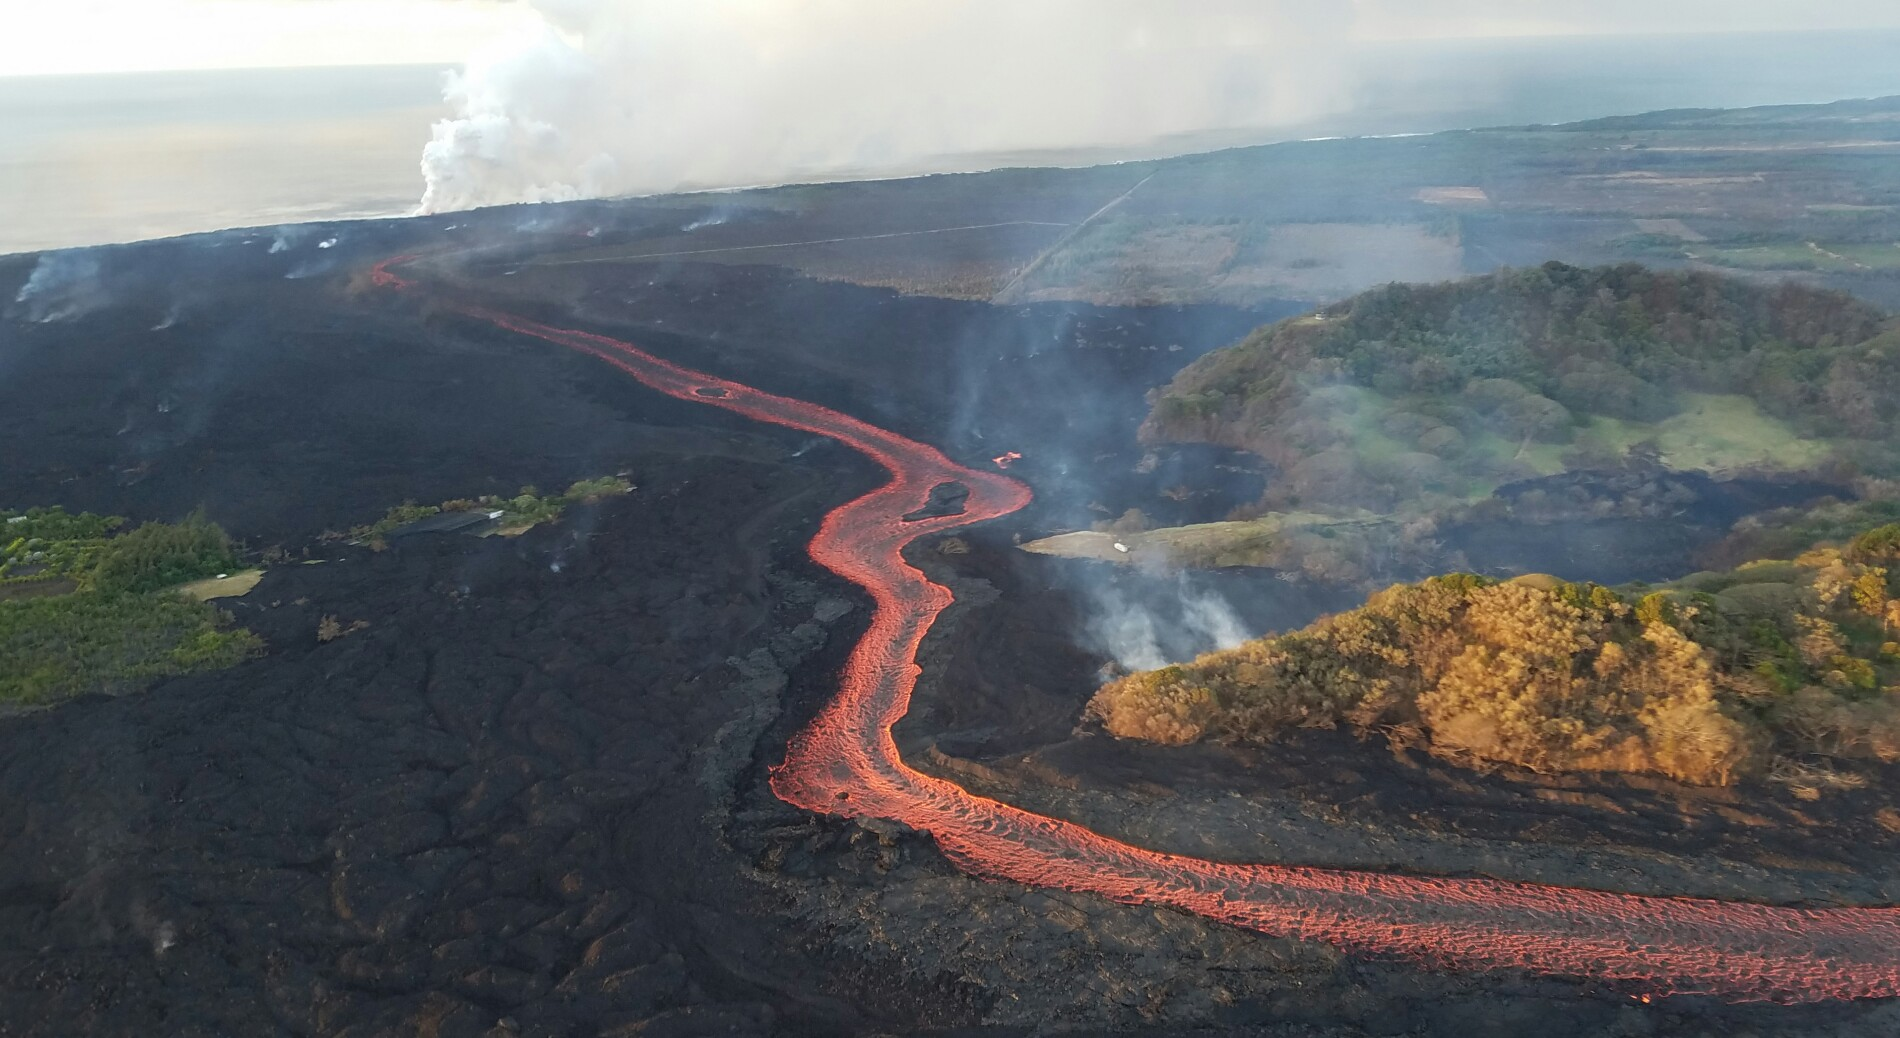 Today's Image of the Day from the U.S. Geological Survey (USGS) shows the river of lava released by fissure 8 as it continues to flow through a well-established channel of scorched Earth.